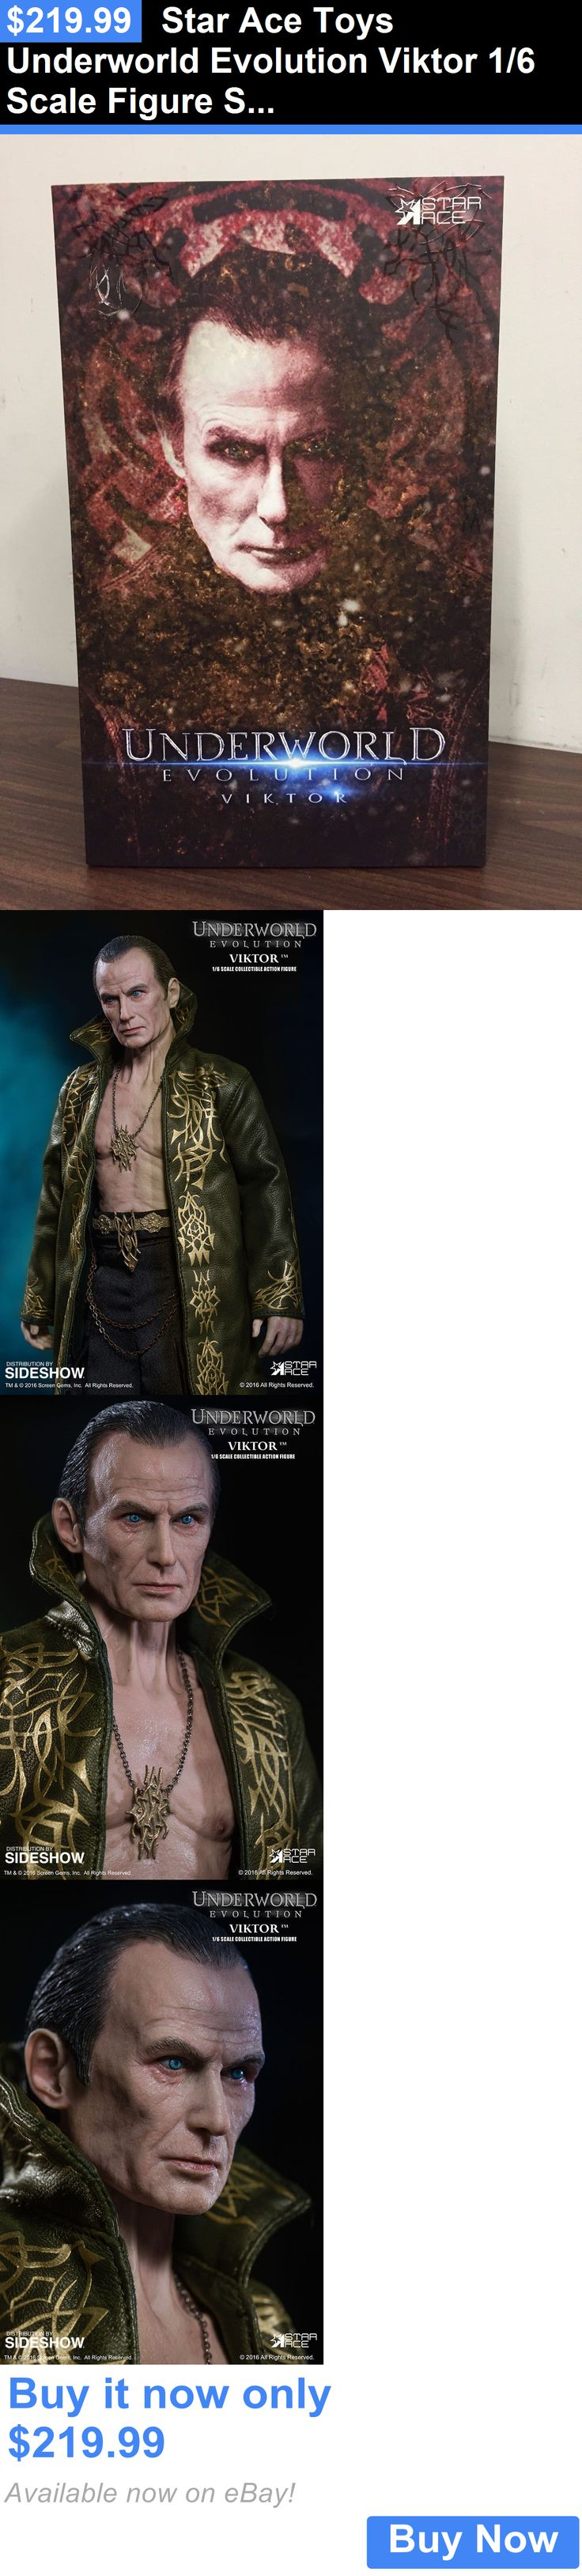 Toys And Games: Star Ace Toys Underworld Evolution Viktor 1/6 Scale Figure Sa0037 BUY IT NOW ONLY: $219.99